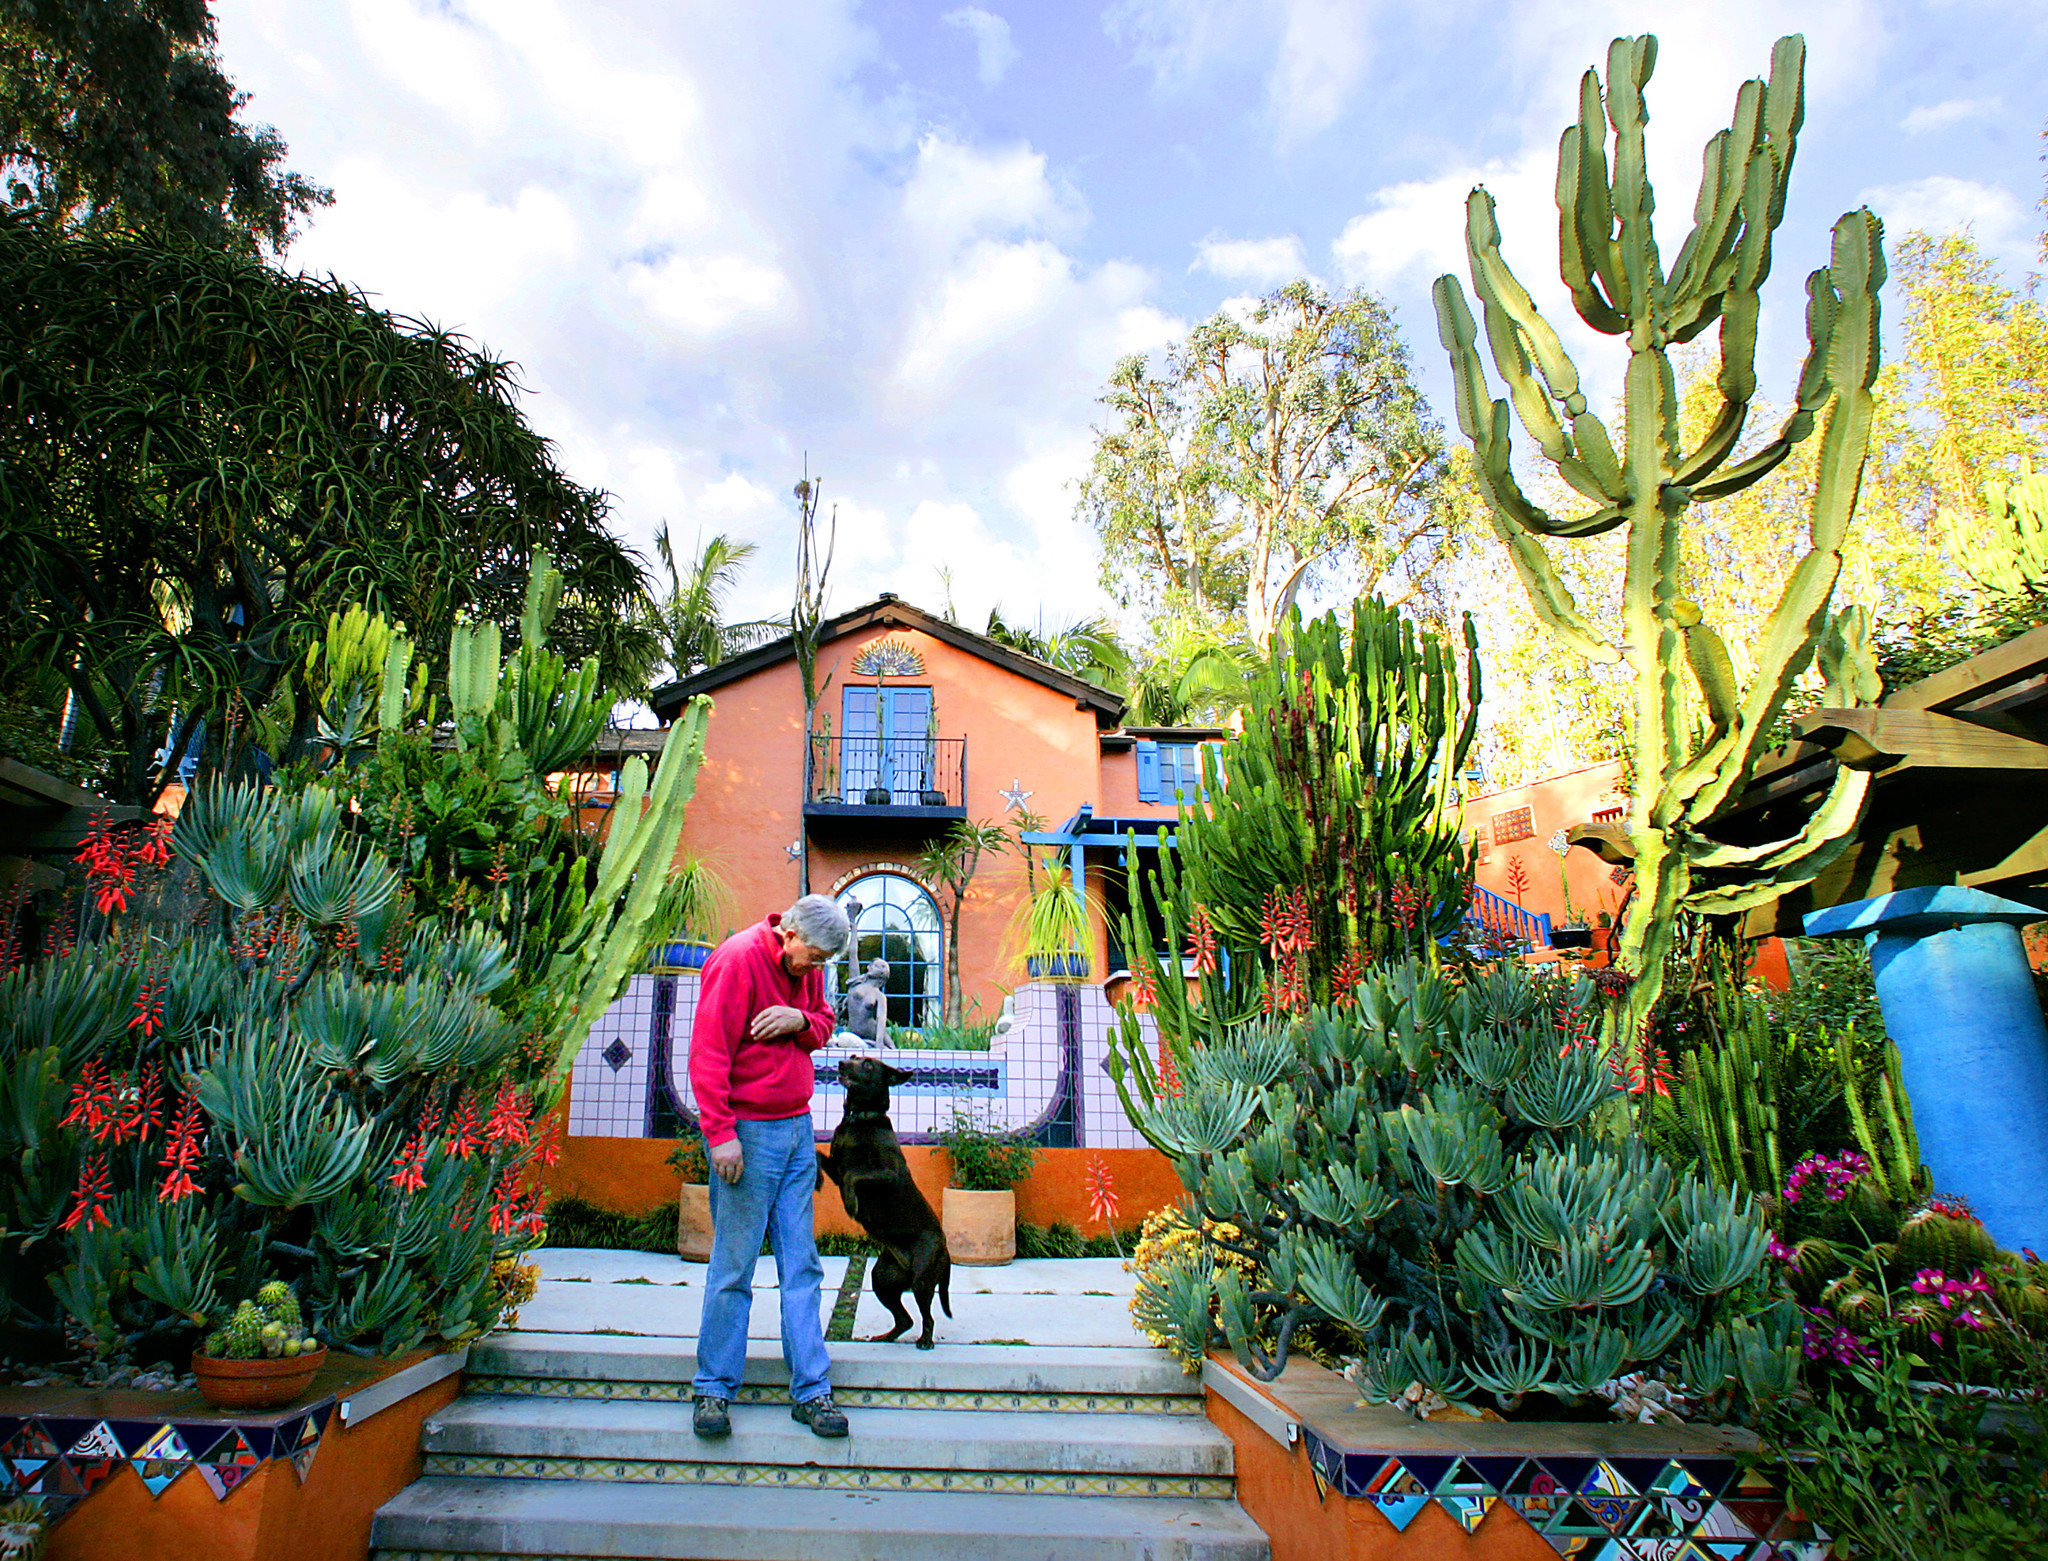 Spanish Style Homes how spanish style suits sunny socal living - la times